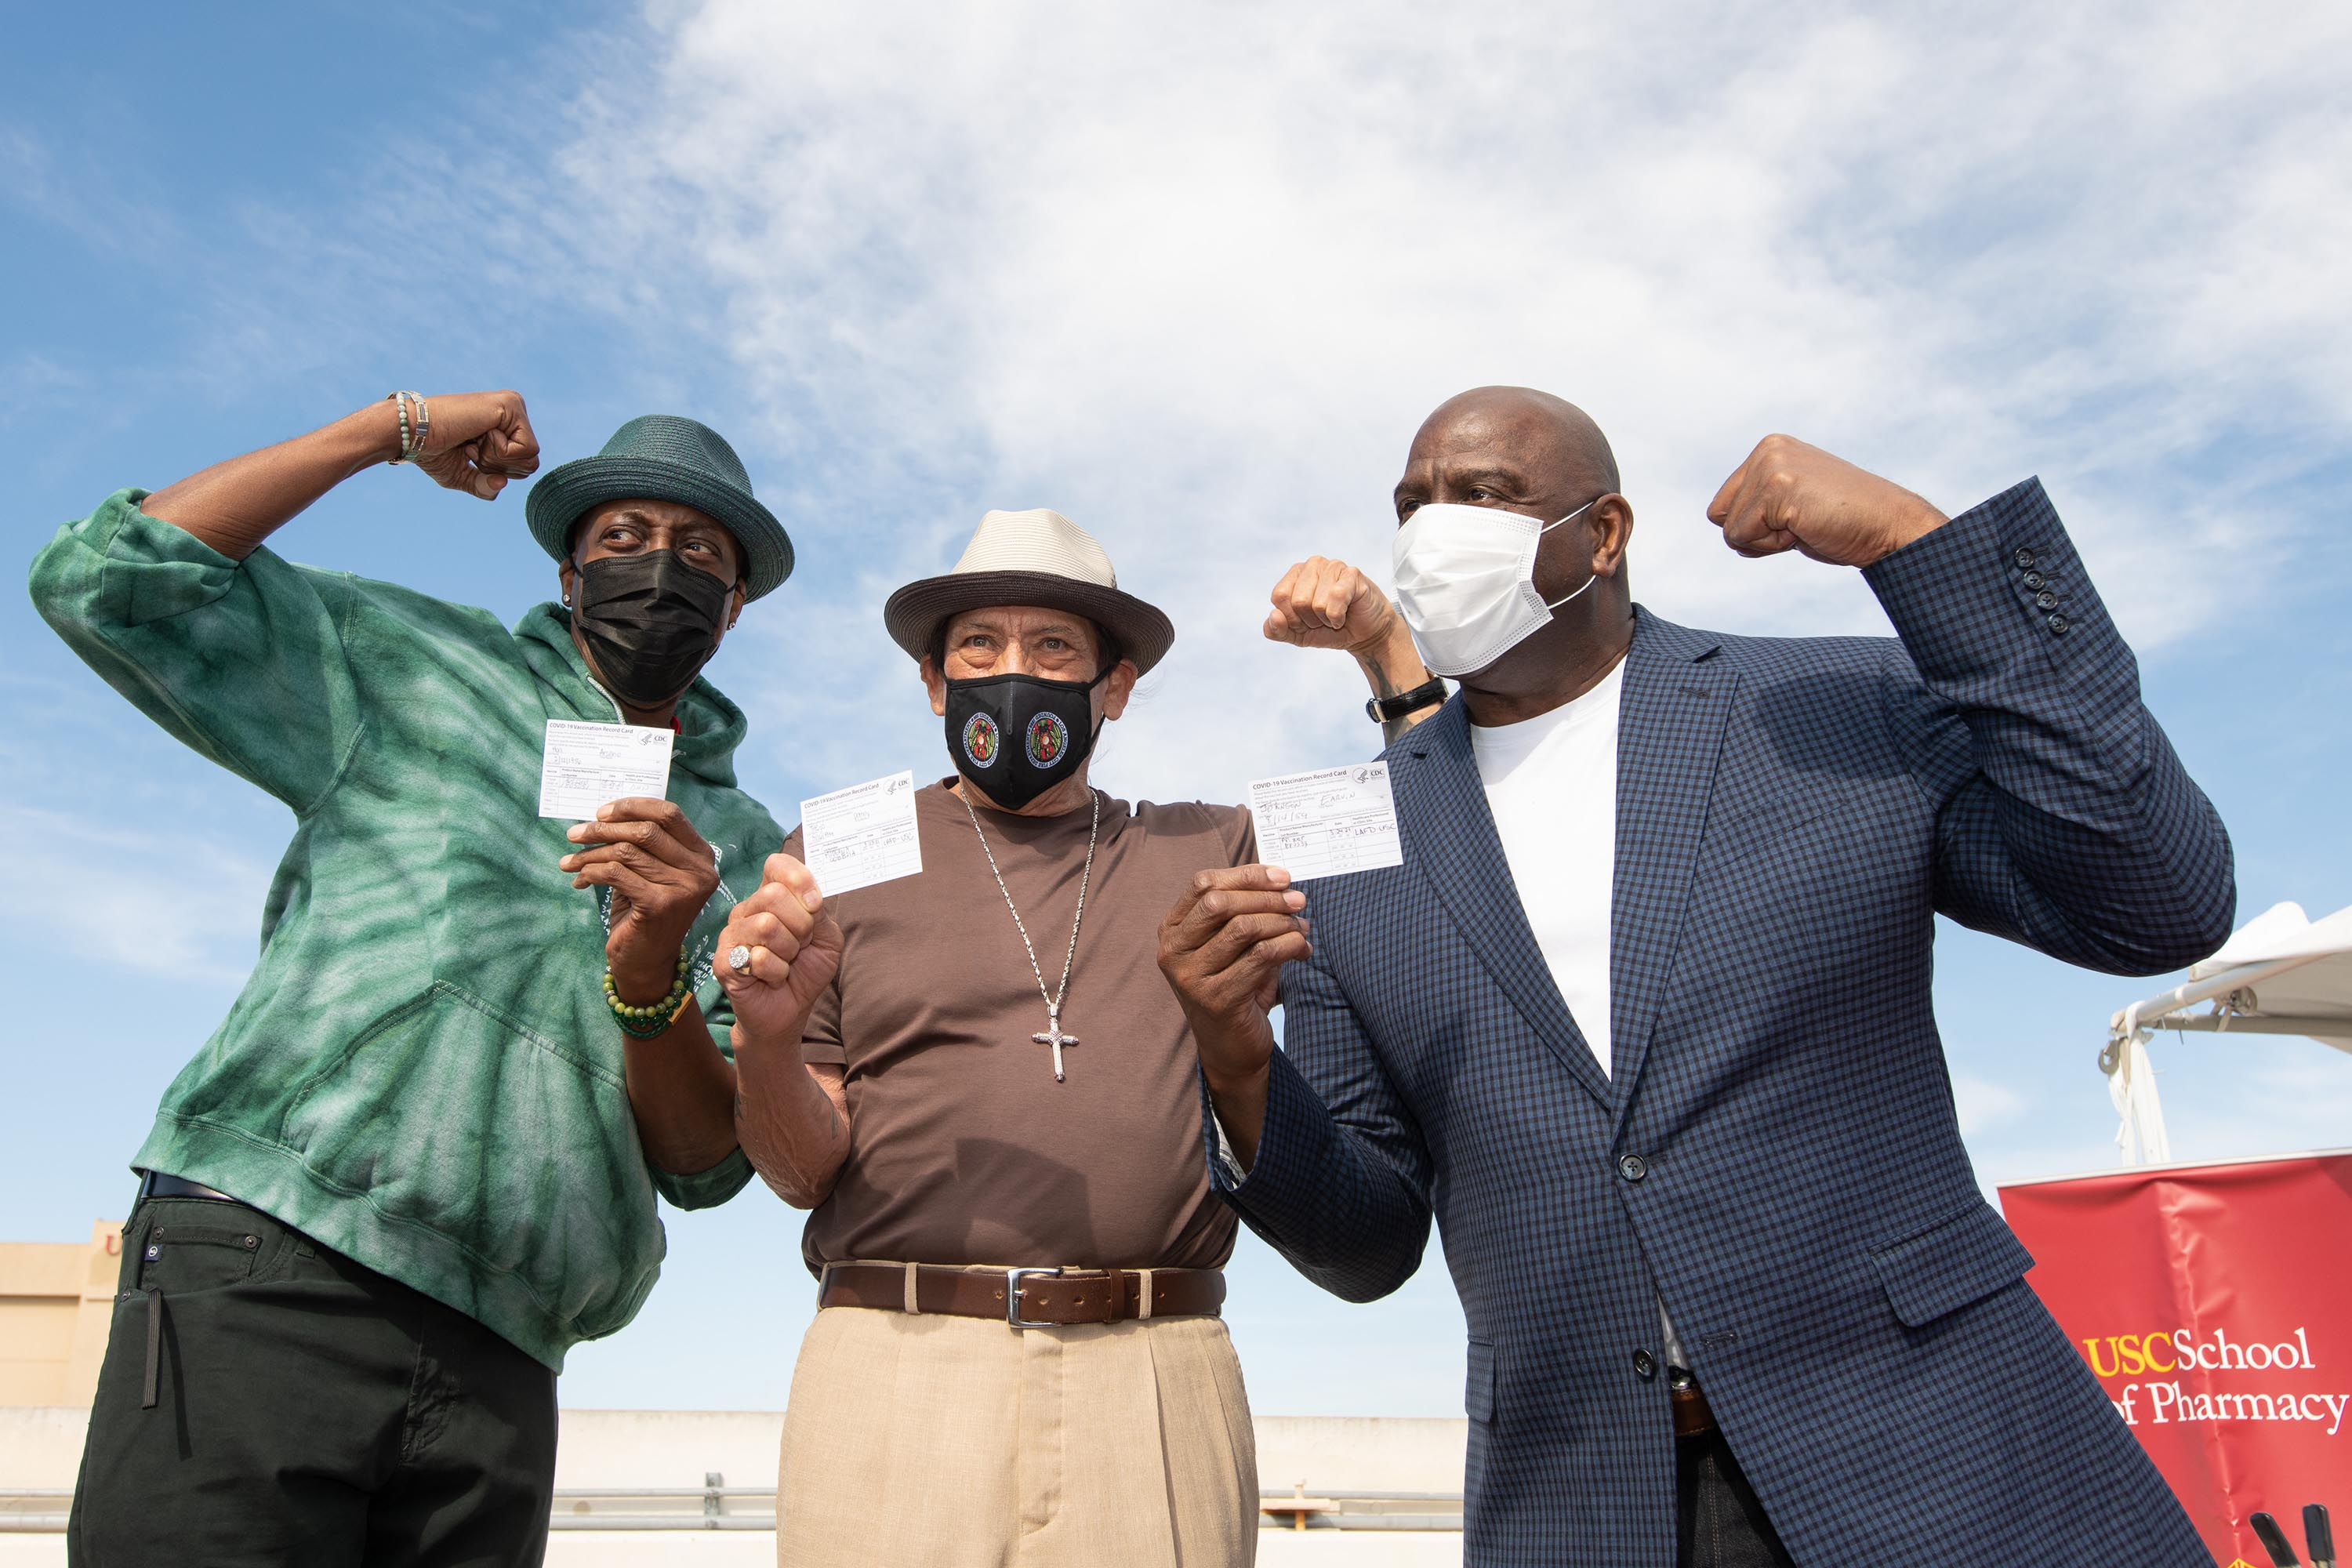 District 2 – Supervisor Holly J Mitchell<br> <b>March 24, 2021 - Arsenio Hall, Danny Trejo, and Earvin Magic Johnson show off their COVID-19 vaccination cards after getting their first dose at USC.</b><br><i>Photo by Bryan Chan / Board of Supervisors</i>